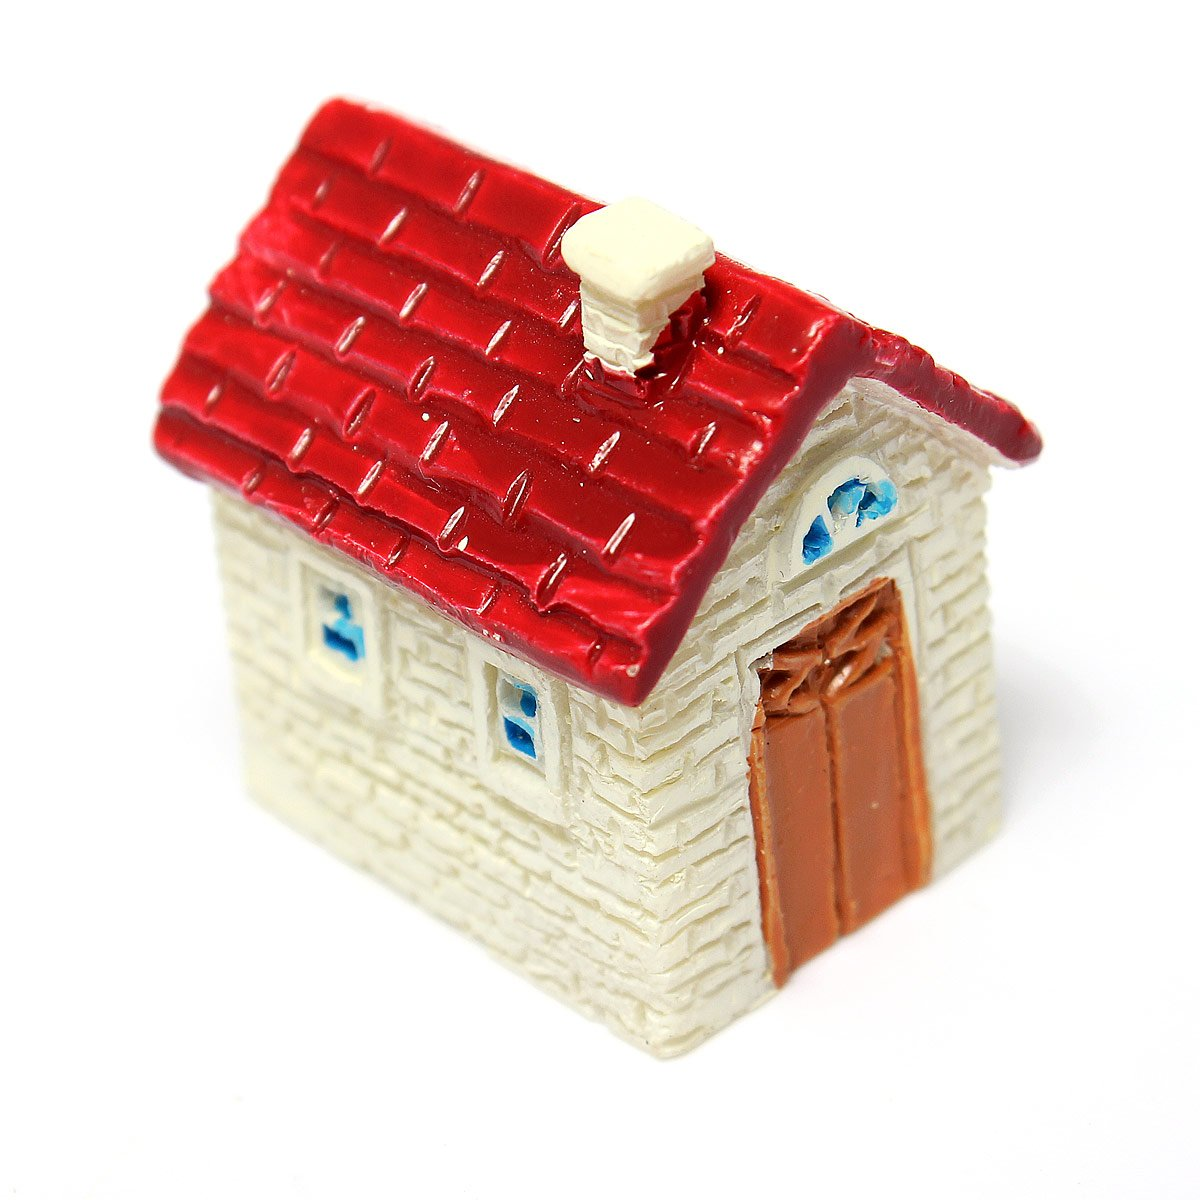 Miniature Resin Small House Ornaments Home Garden Landscape Decoration Red(China (Mainland))